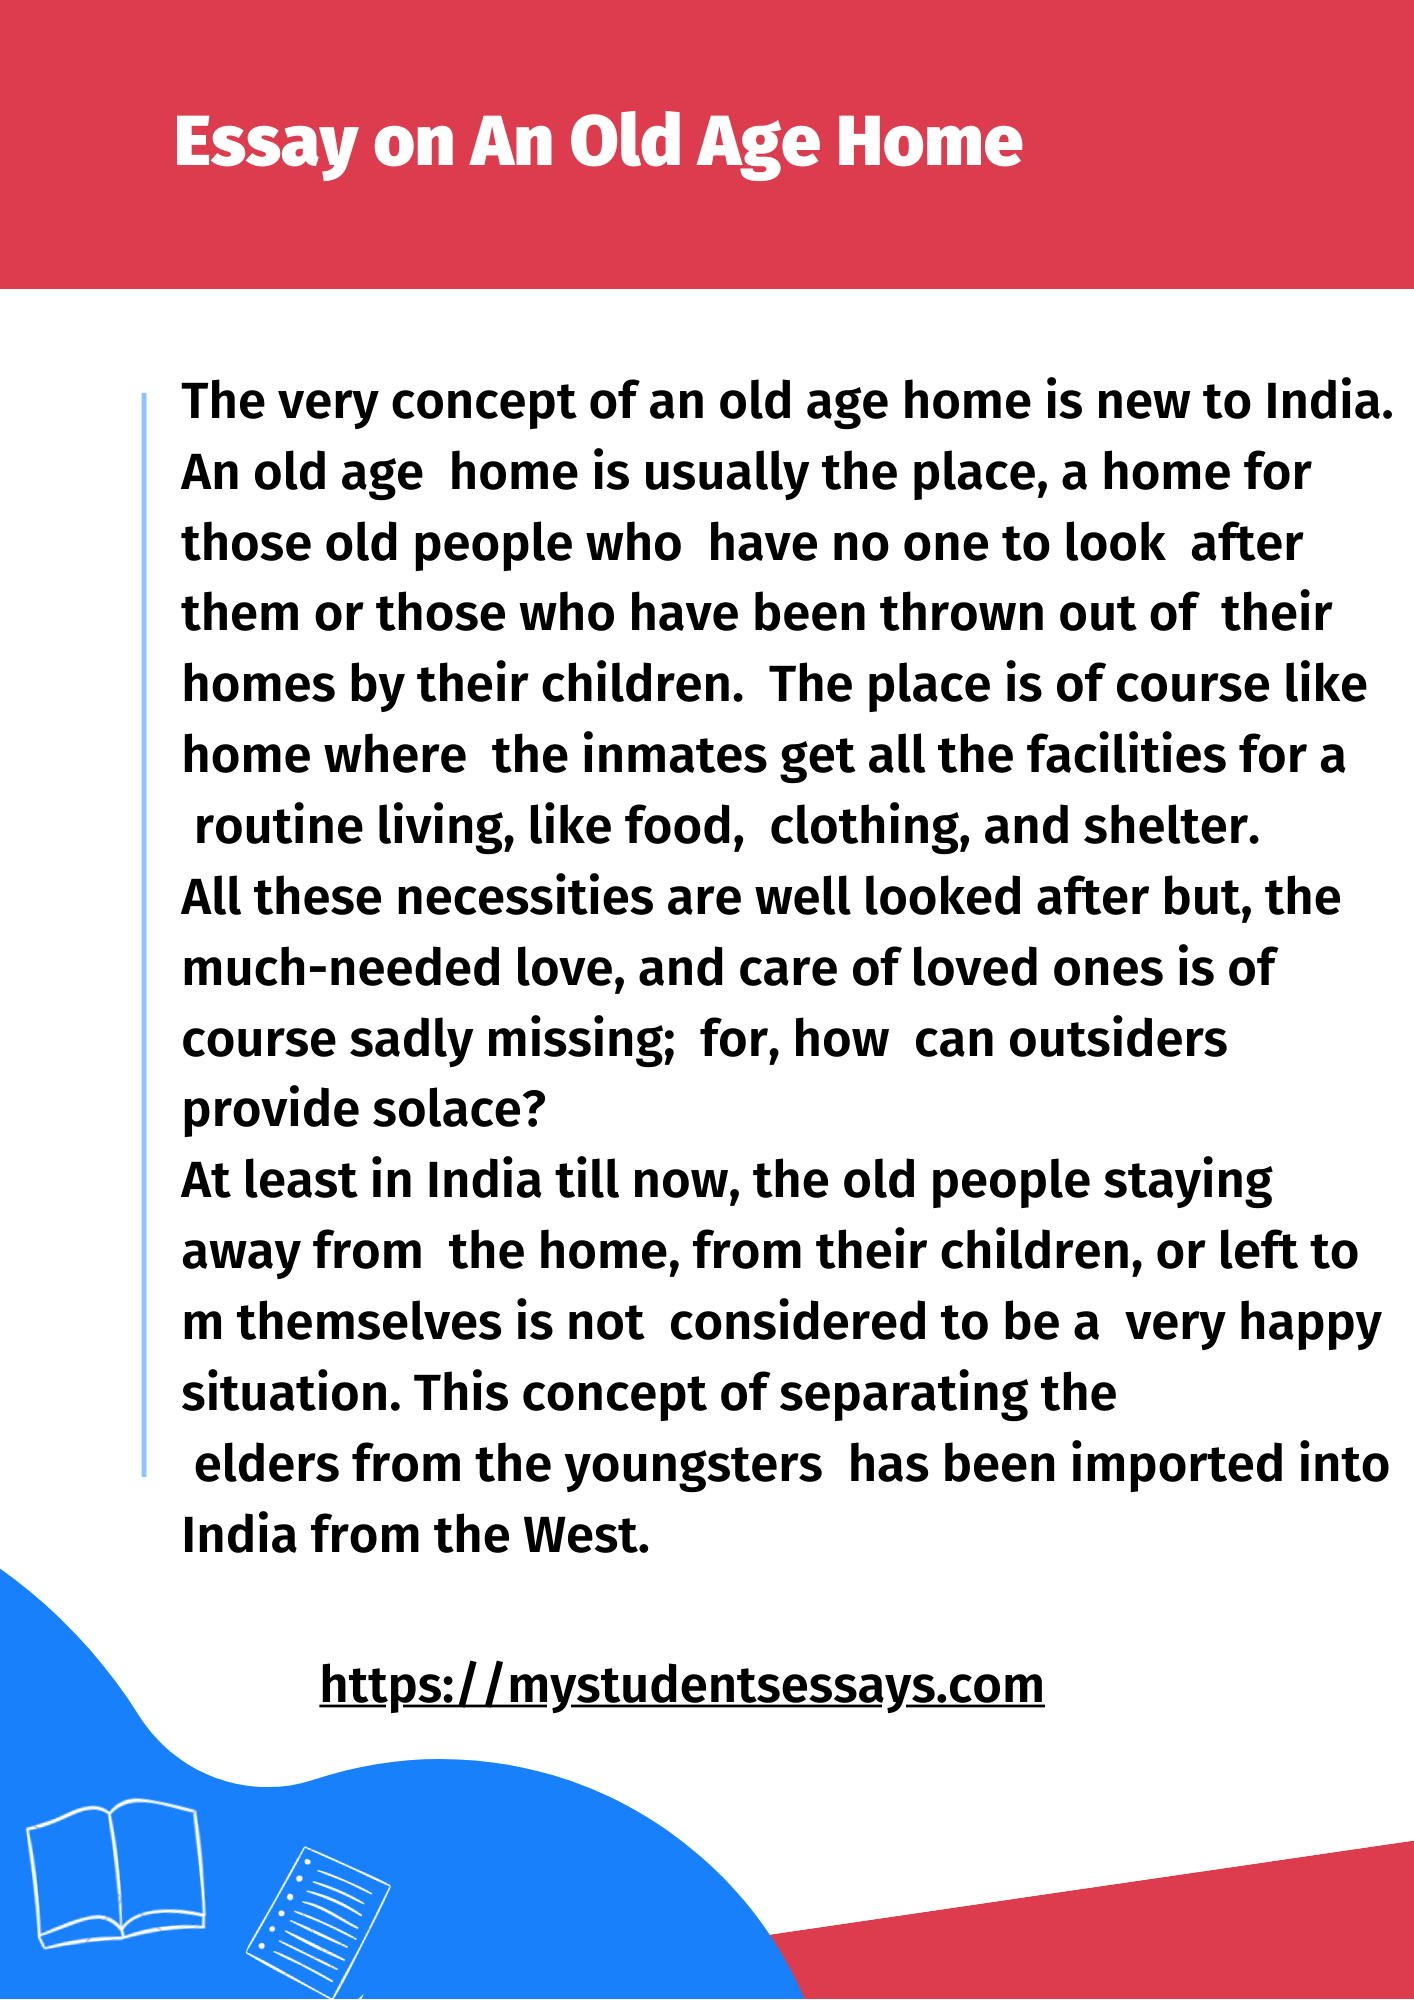 Old age home essay for students